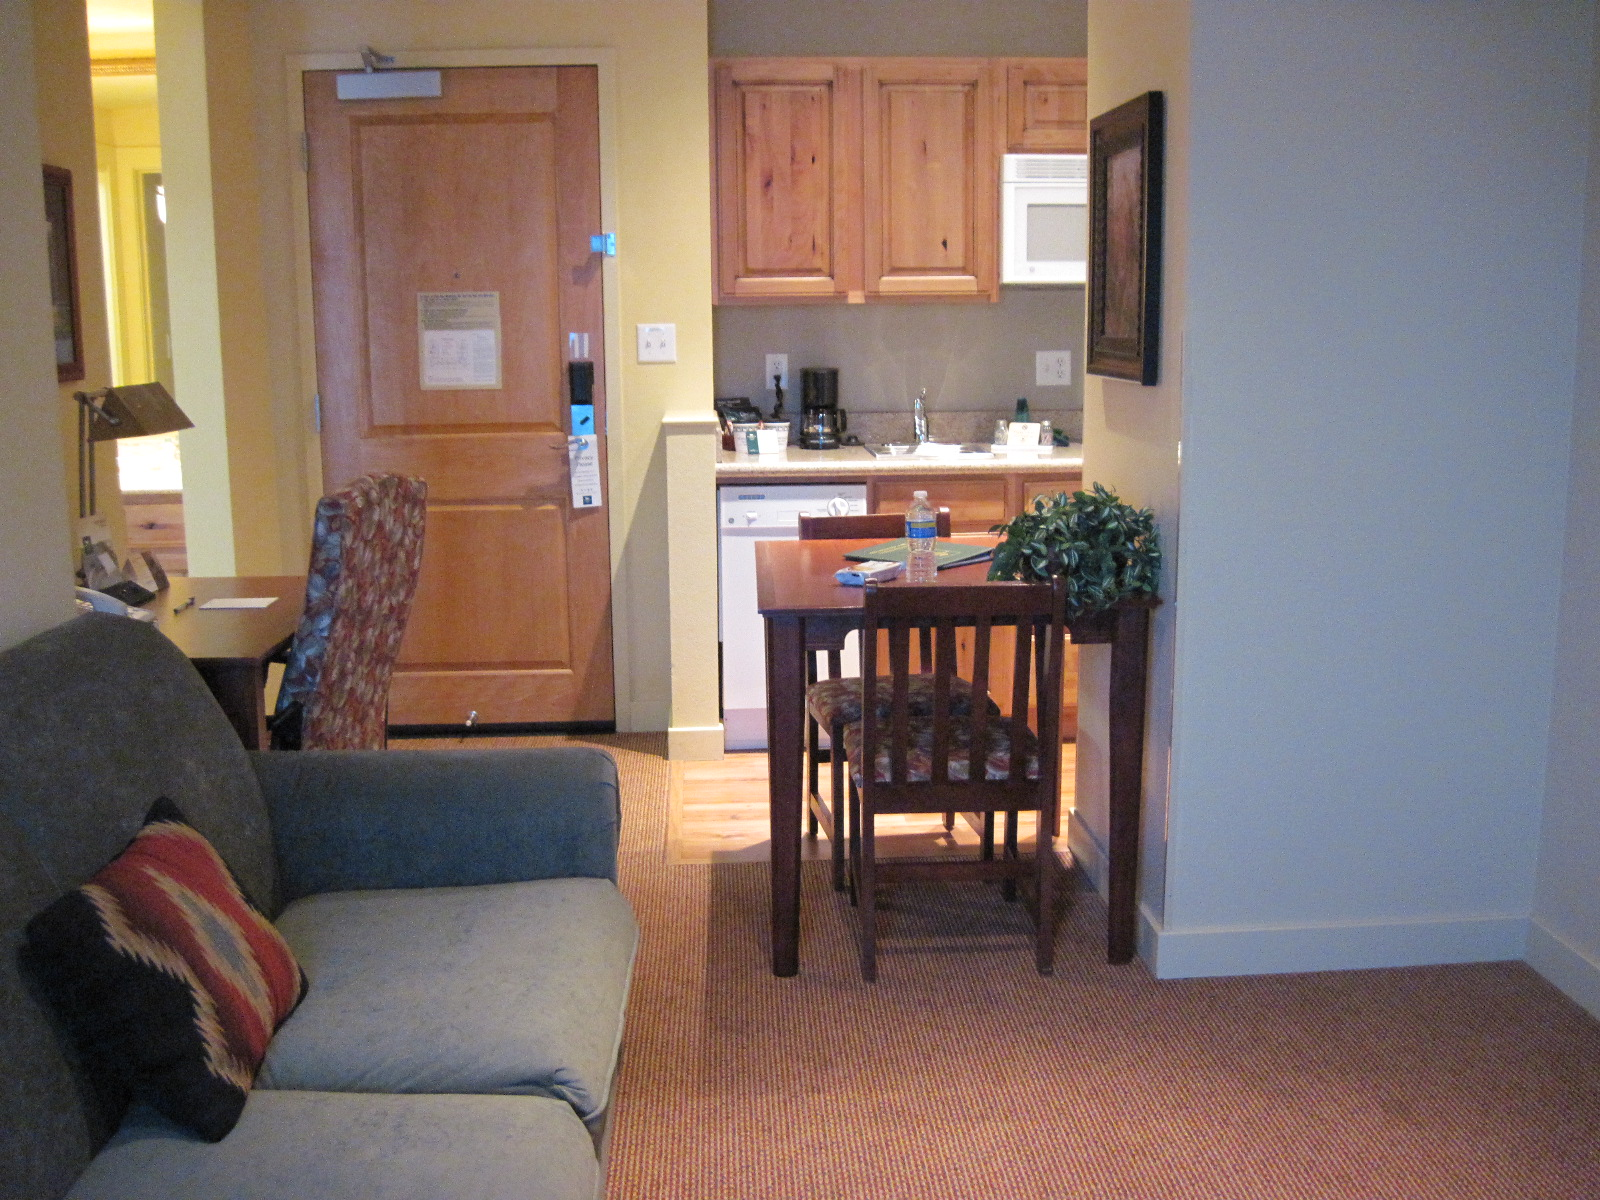 Travel reviews information jackson wyoming homewood suites for 2 bedroom suites in jackson hole wy